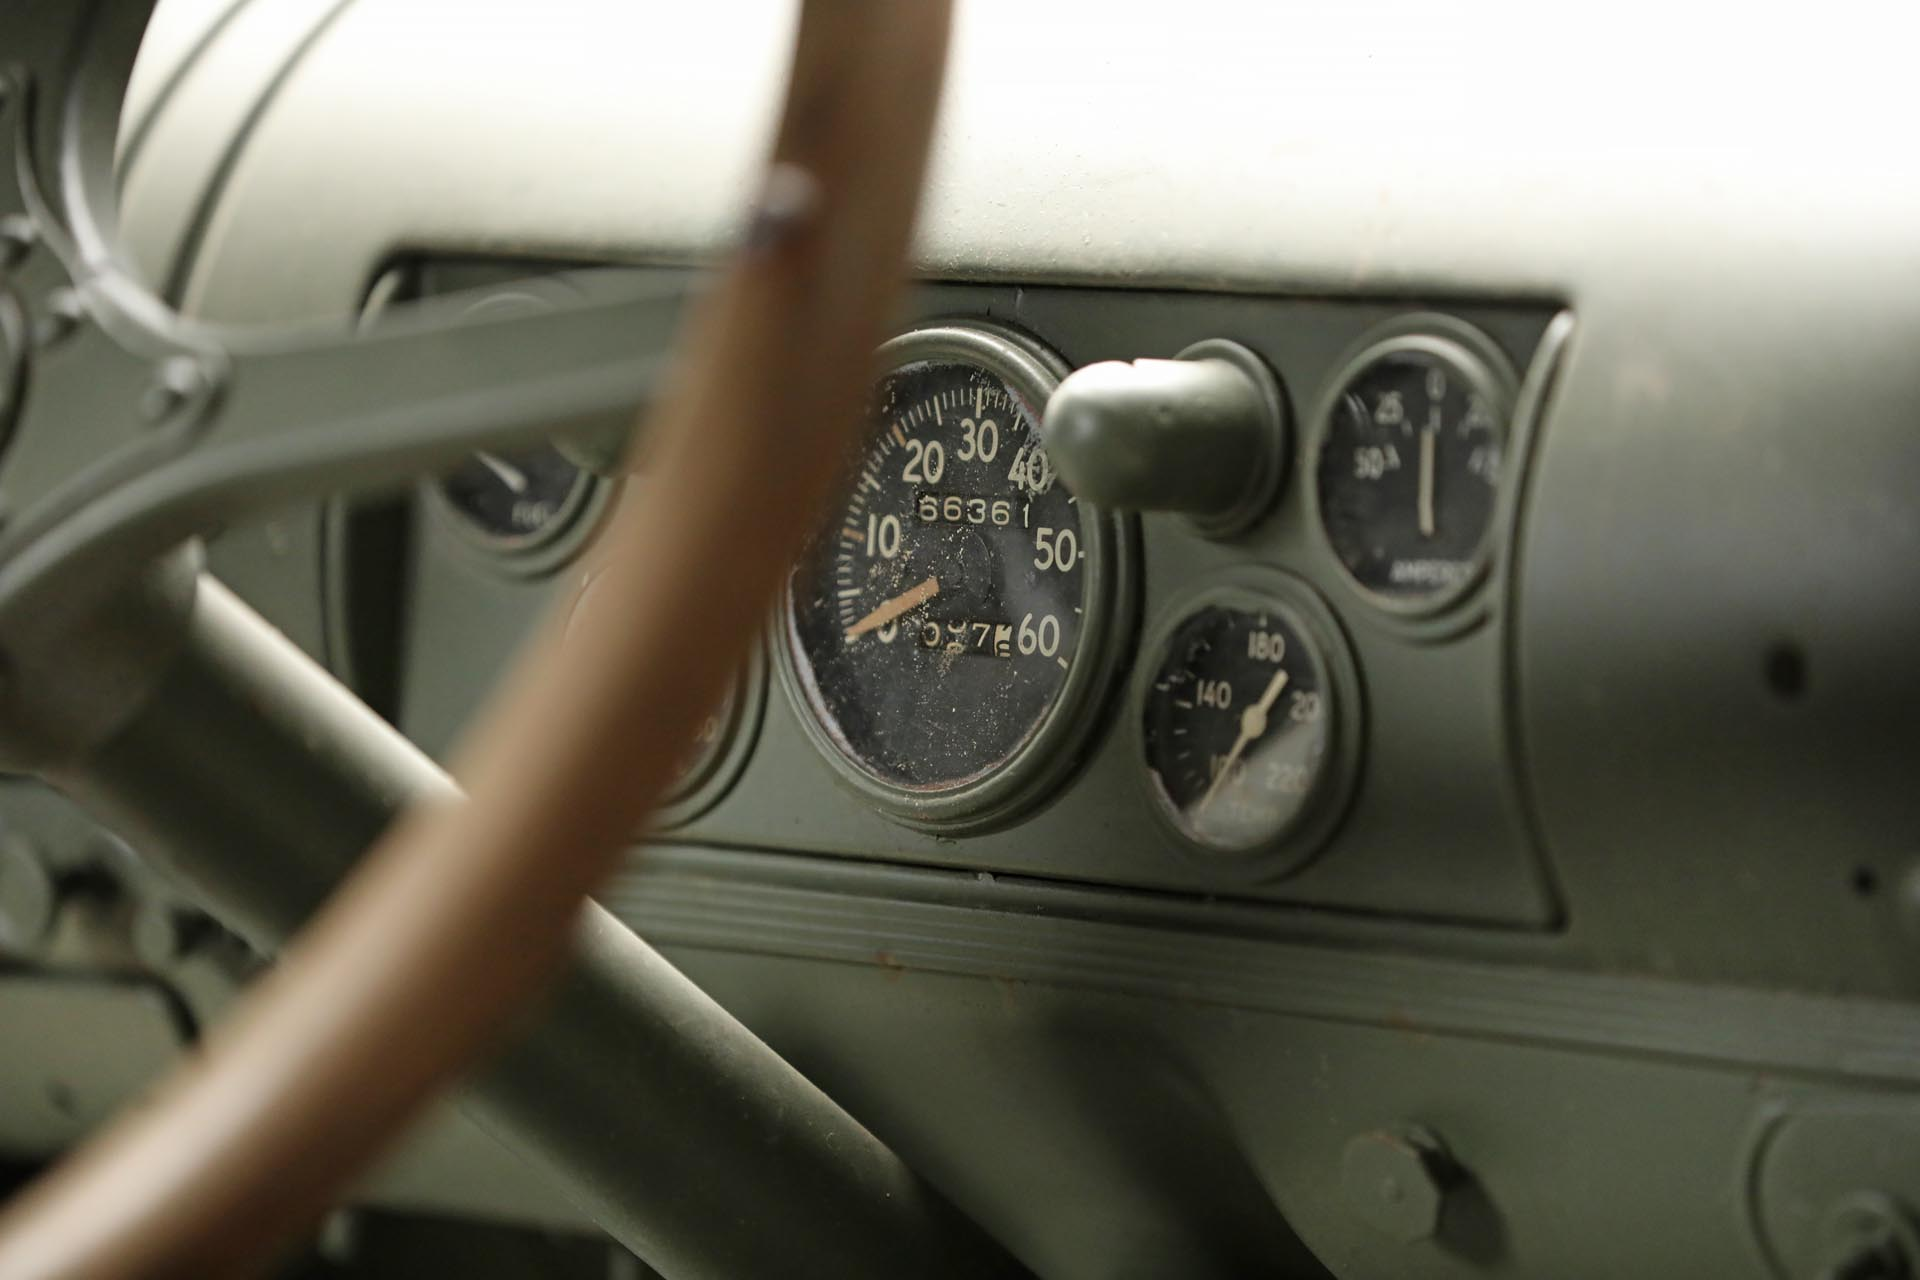 1941 Chevrolet 1543 GS Speedometer